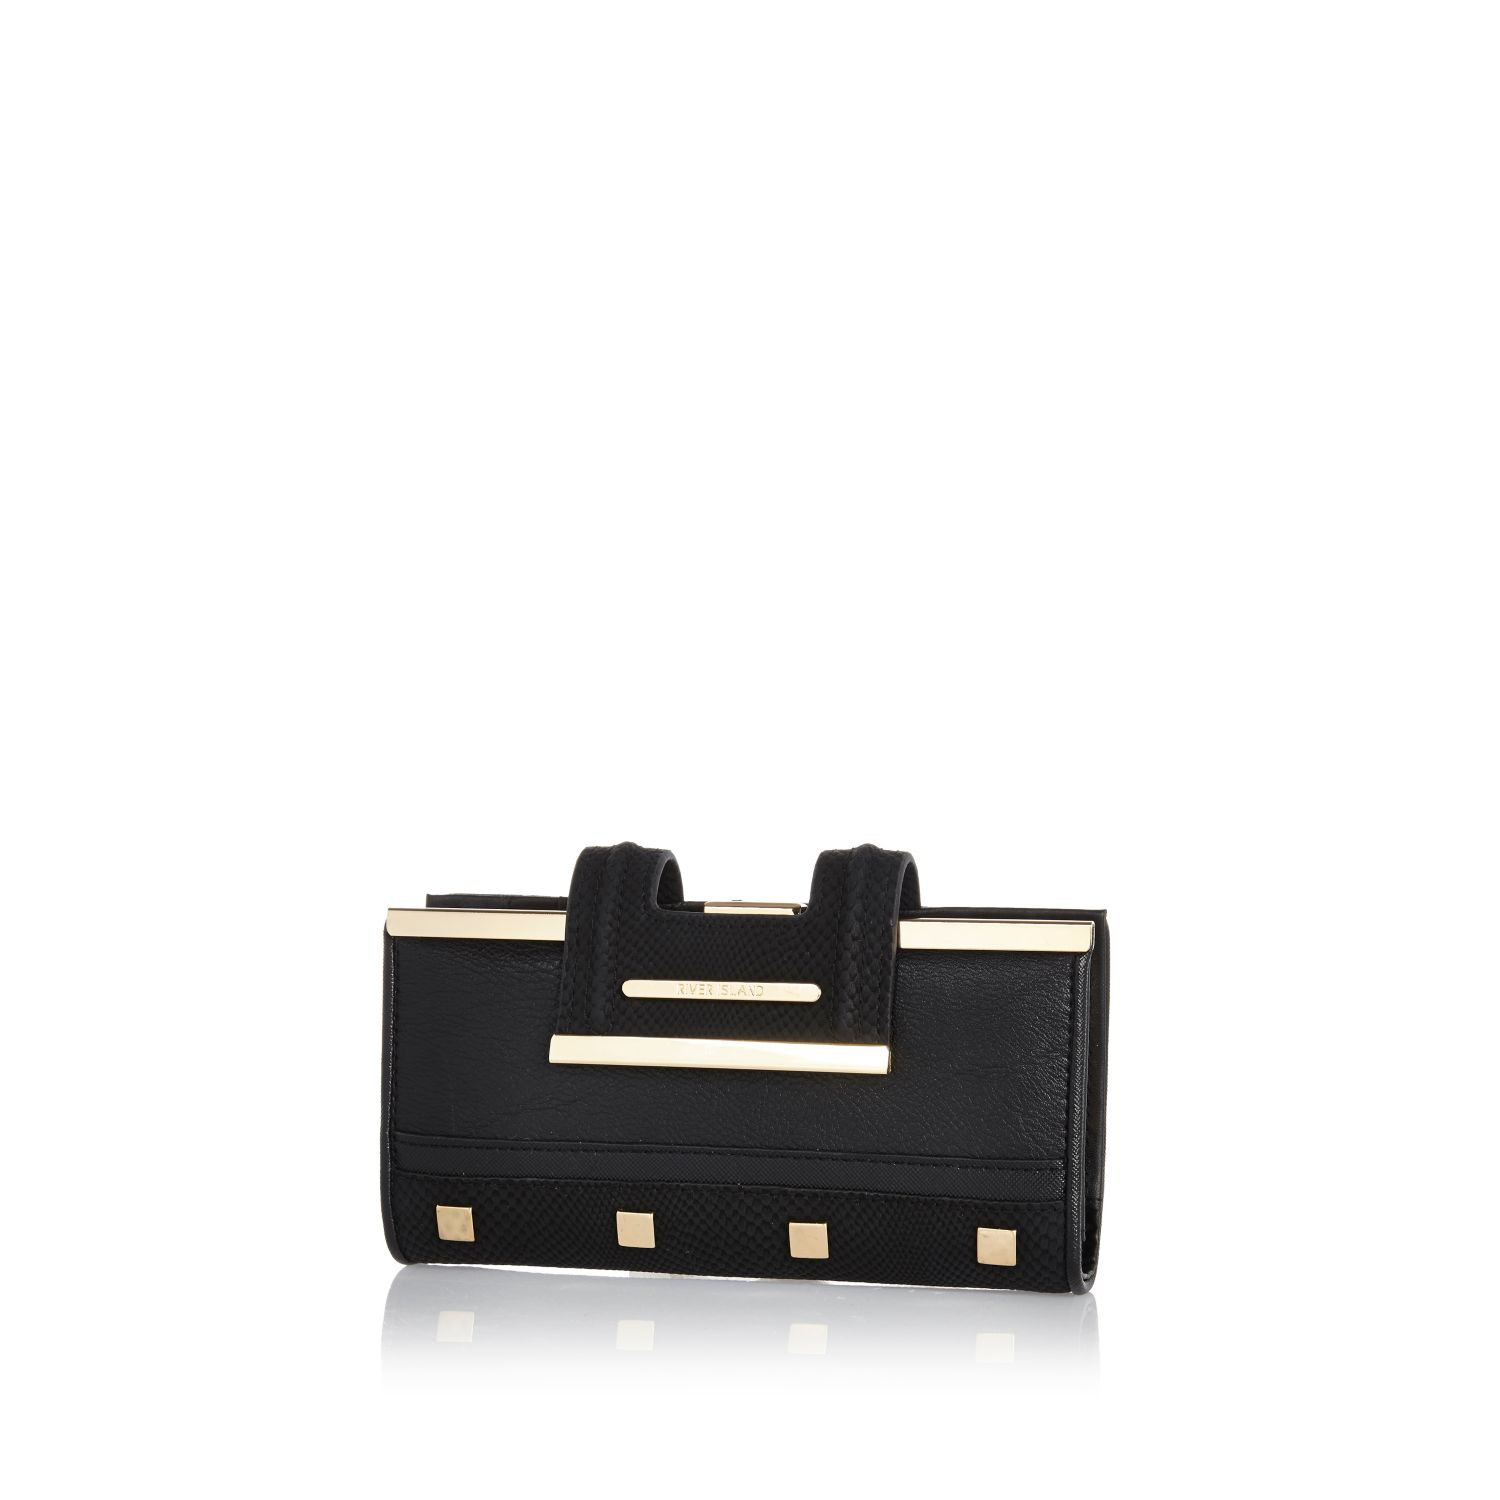 3ceed1d86fba0 River Island Black Studded Clip Top Purse in Black - Lyst